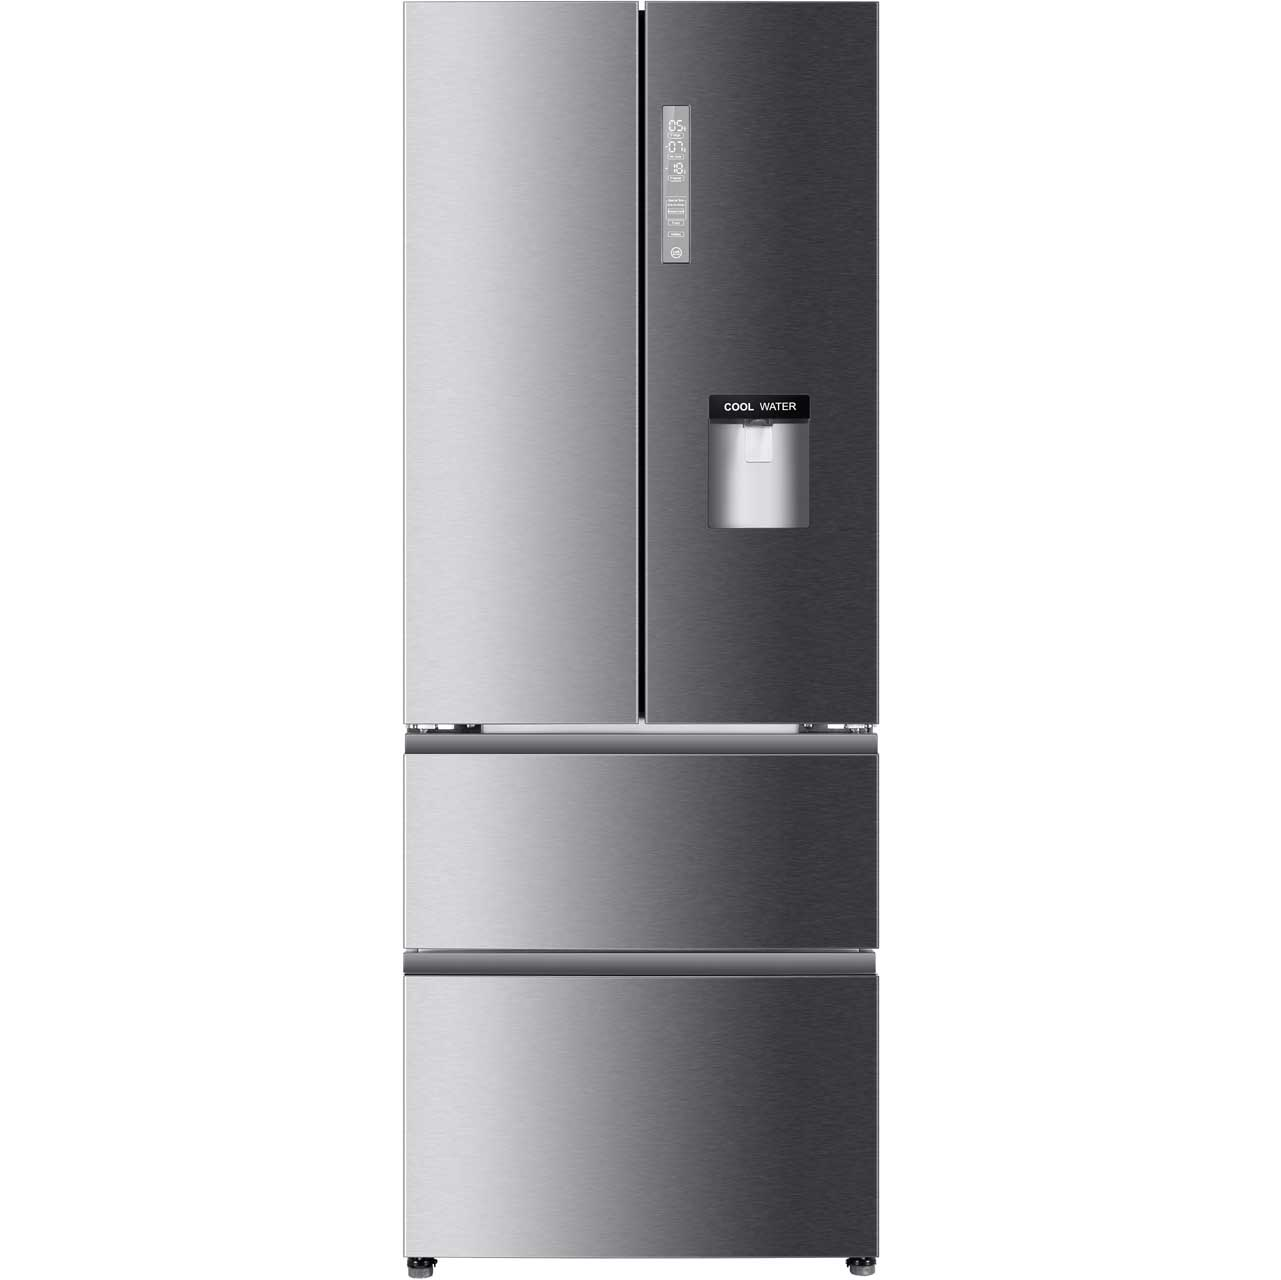 Haier BE3FE742CMJW Free Standing Fridge Freezer Frost Free in Stainless Steel